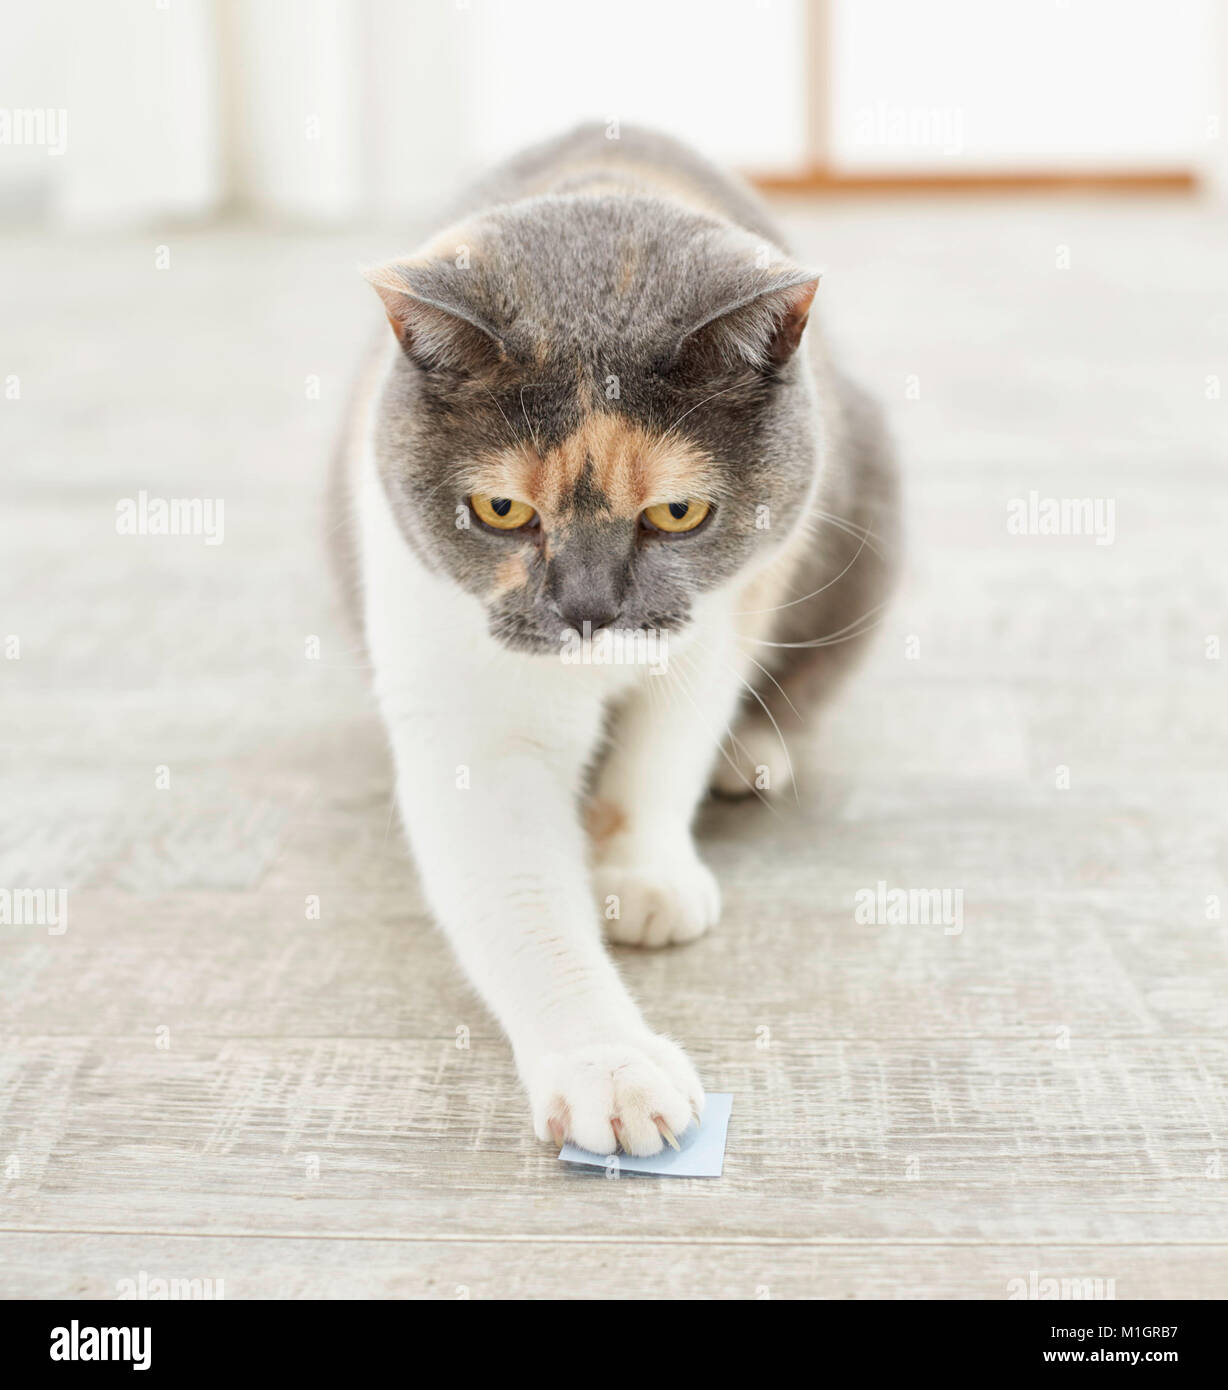 British Shorthair cat. Tricolored adult touching target during clicker training. Germany - Stock Image